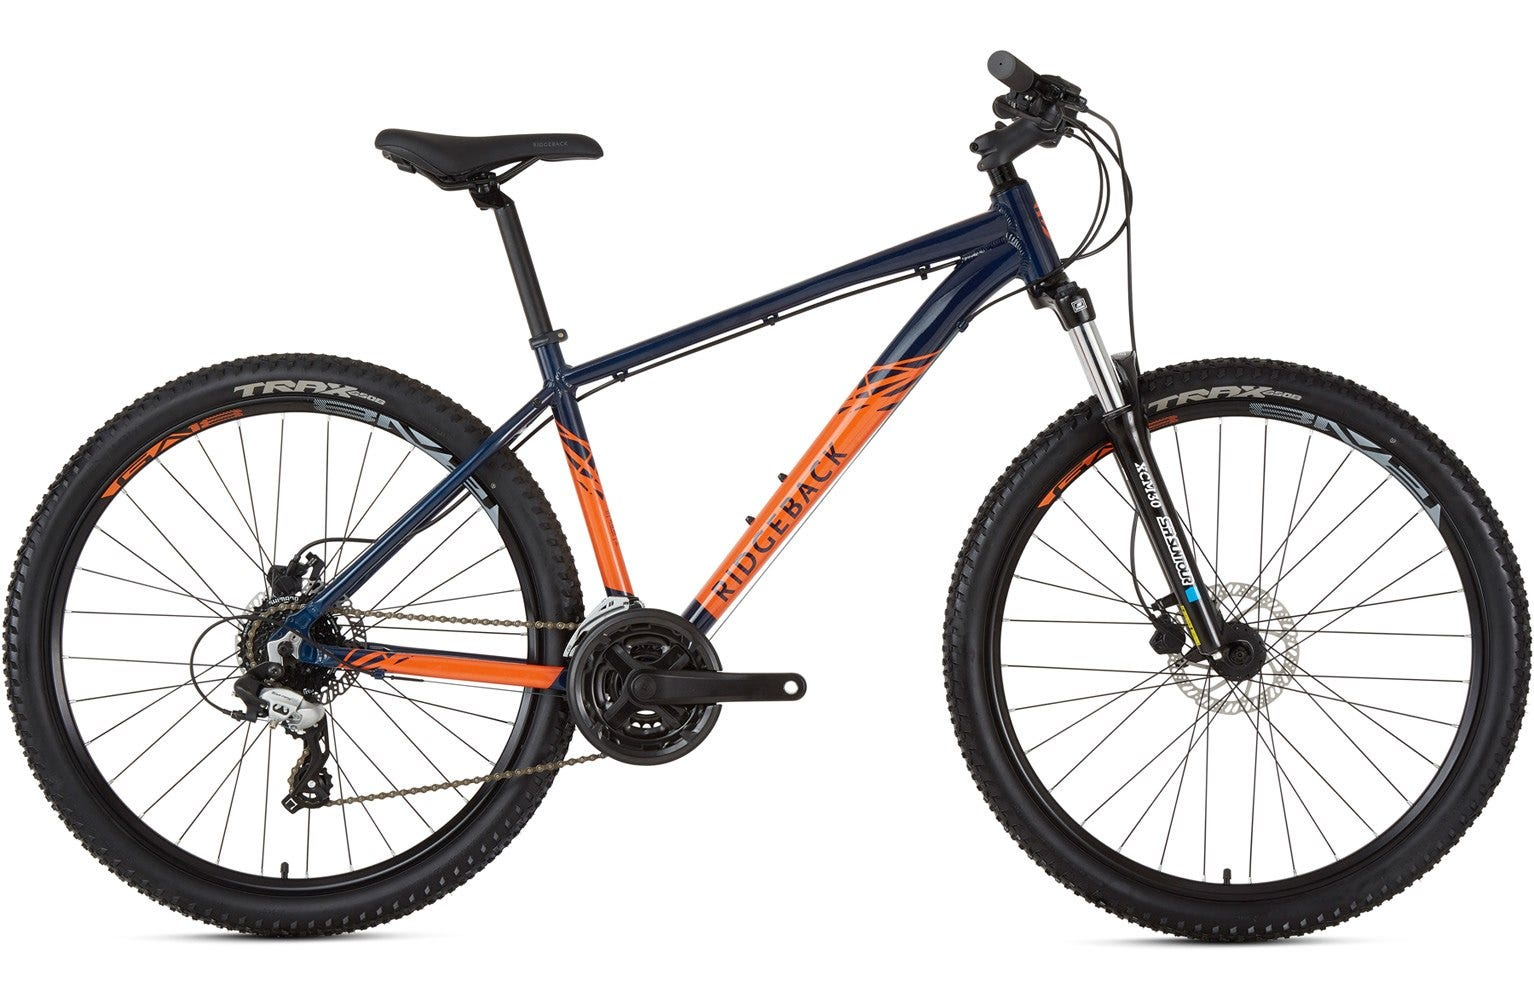 Ridgeback 2020 Terrain 4 LG Bike sample (unused)